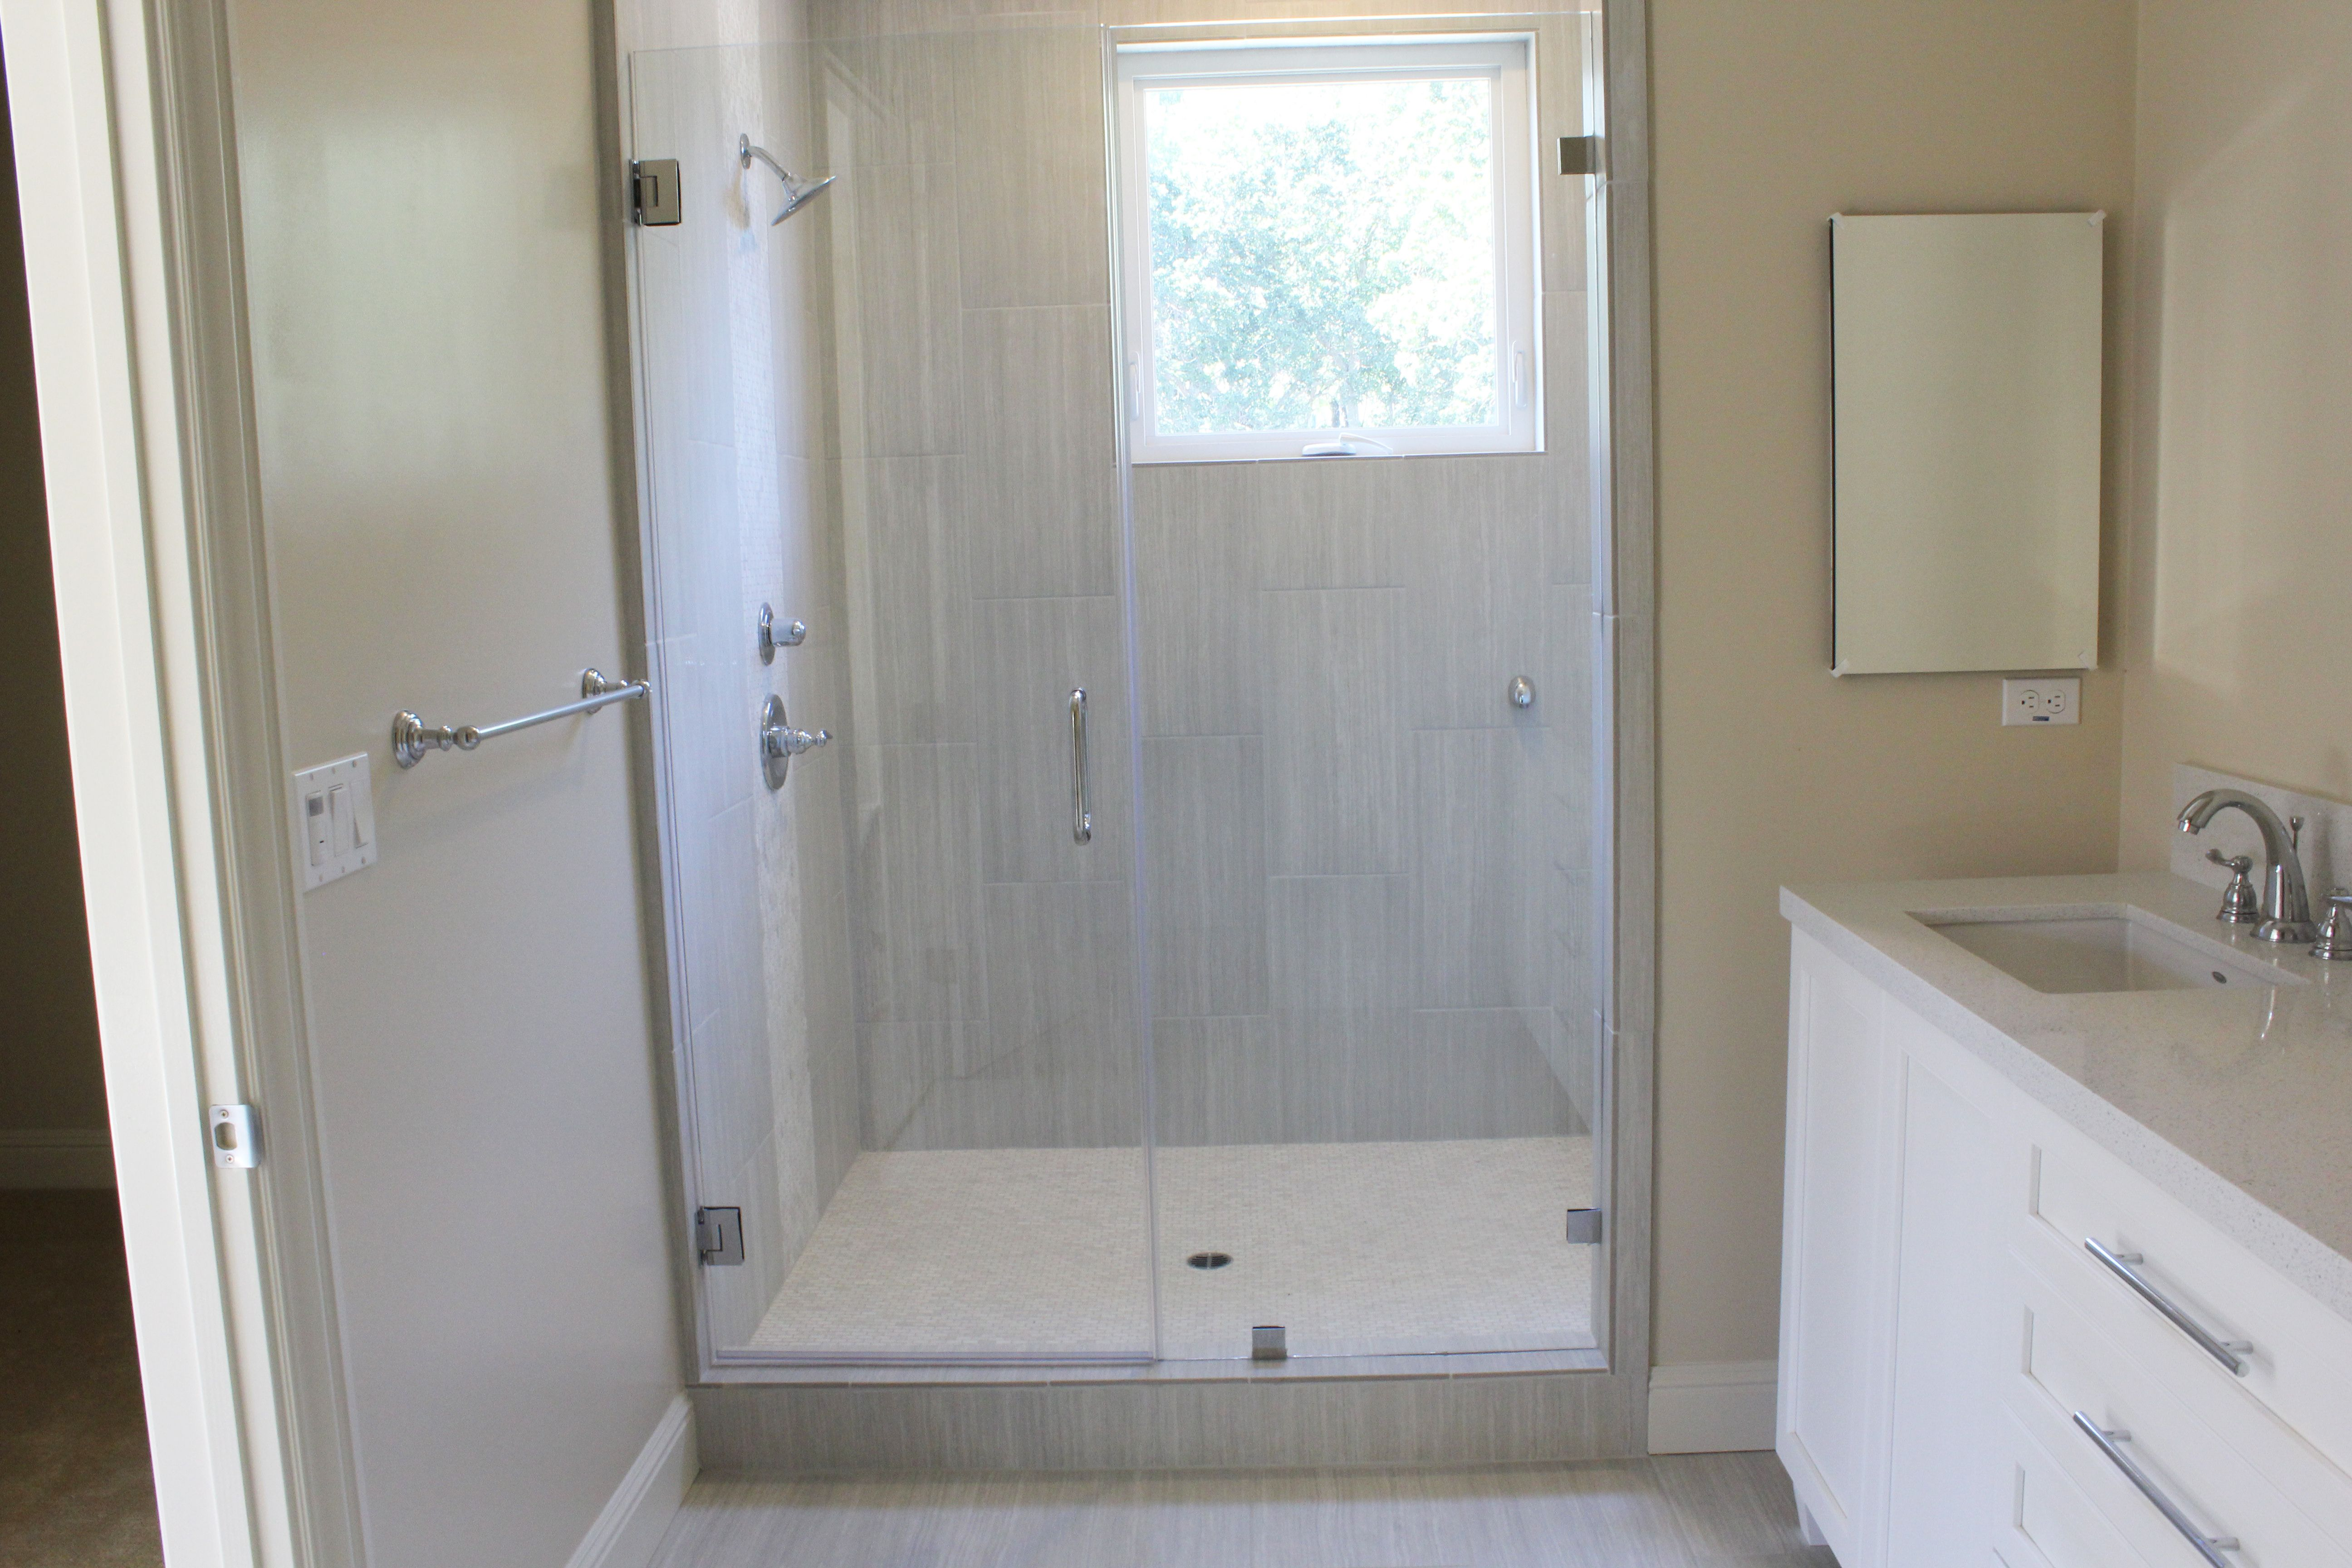 one shower images sale small sofa of bathroom full with stalls stall hardware kits x base size for nice inspirations fiberglass piece